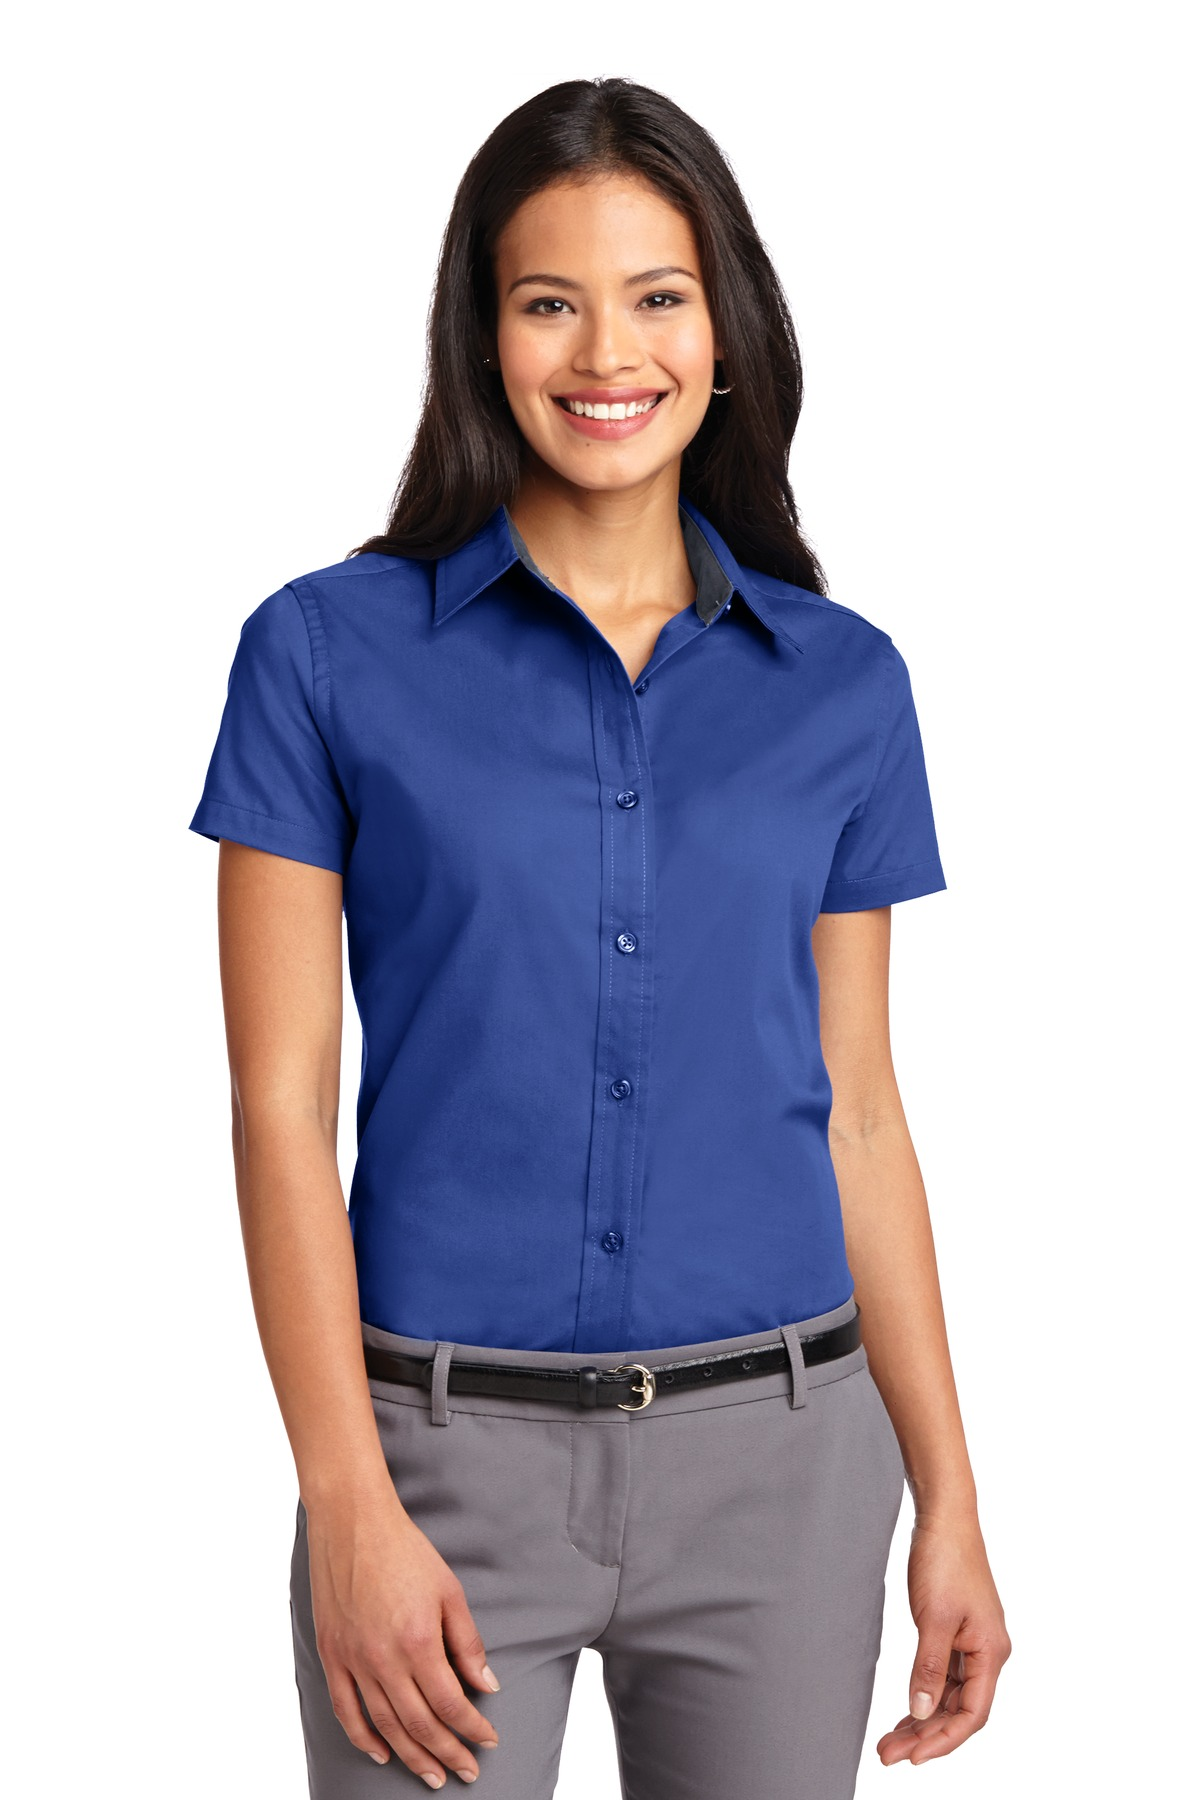 Port Authority ®  Ladies Short Sleeve Easy Care  Shirt.  L508 - Royal/ Classic Navy